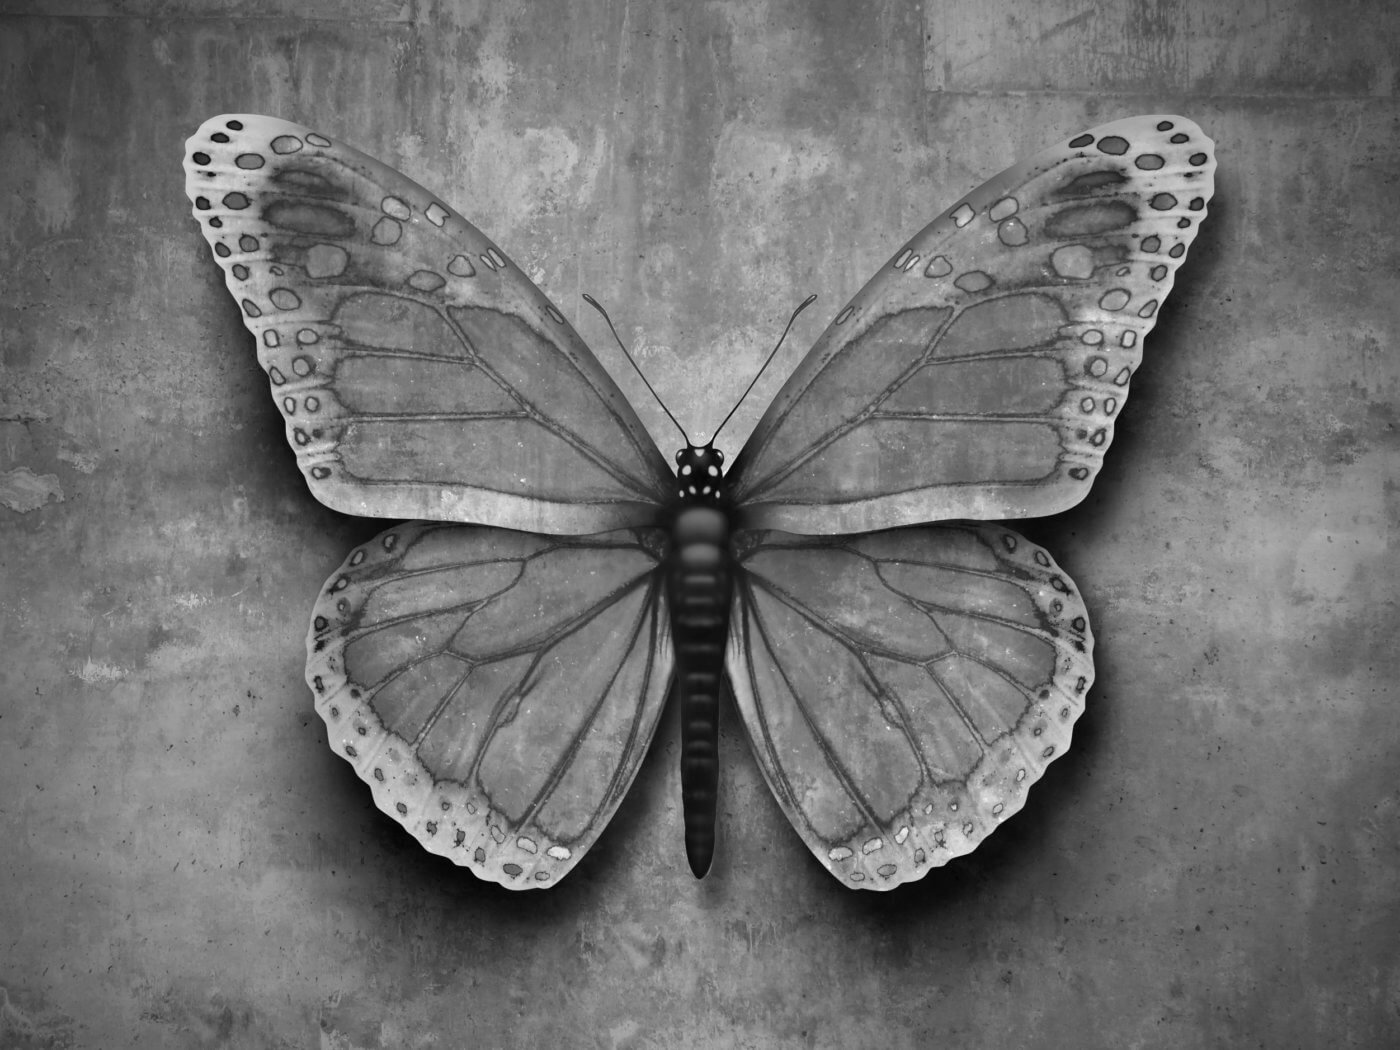 Blending in concept or conformig to surroundings and adapting to new environment as a butterfly on a wall with camouflage texture to hide from predators with 3D illusrtration elements.